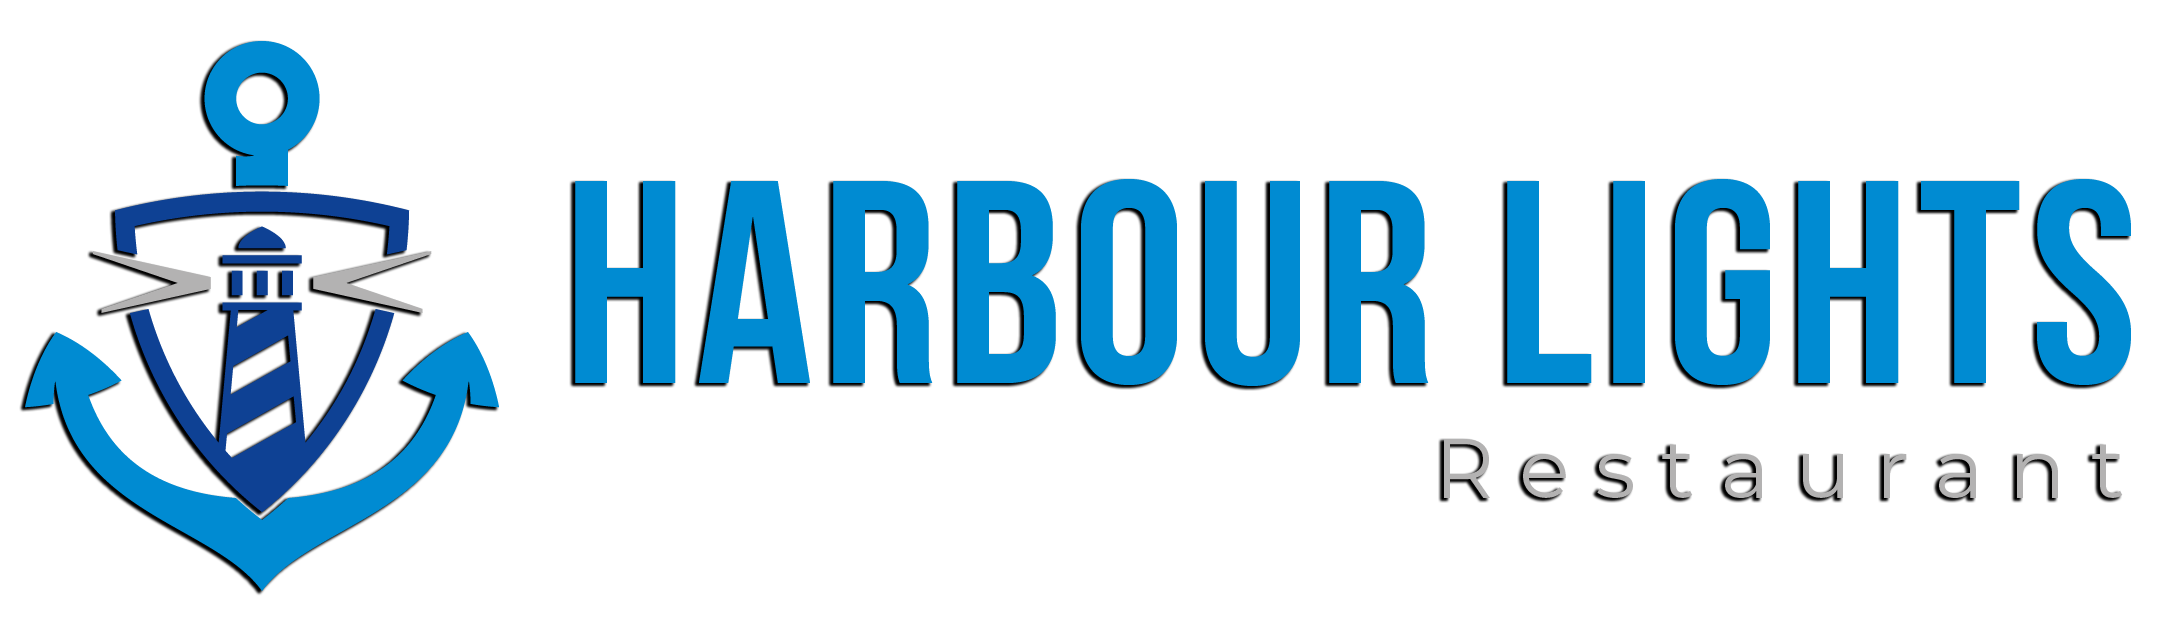 Harbour Lights Restaurant